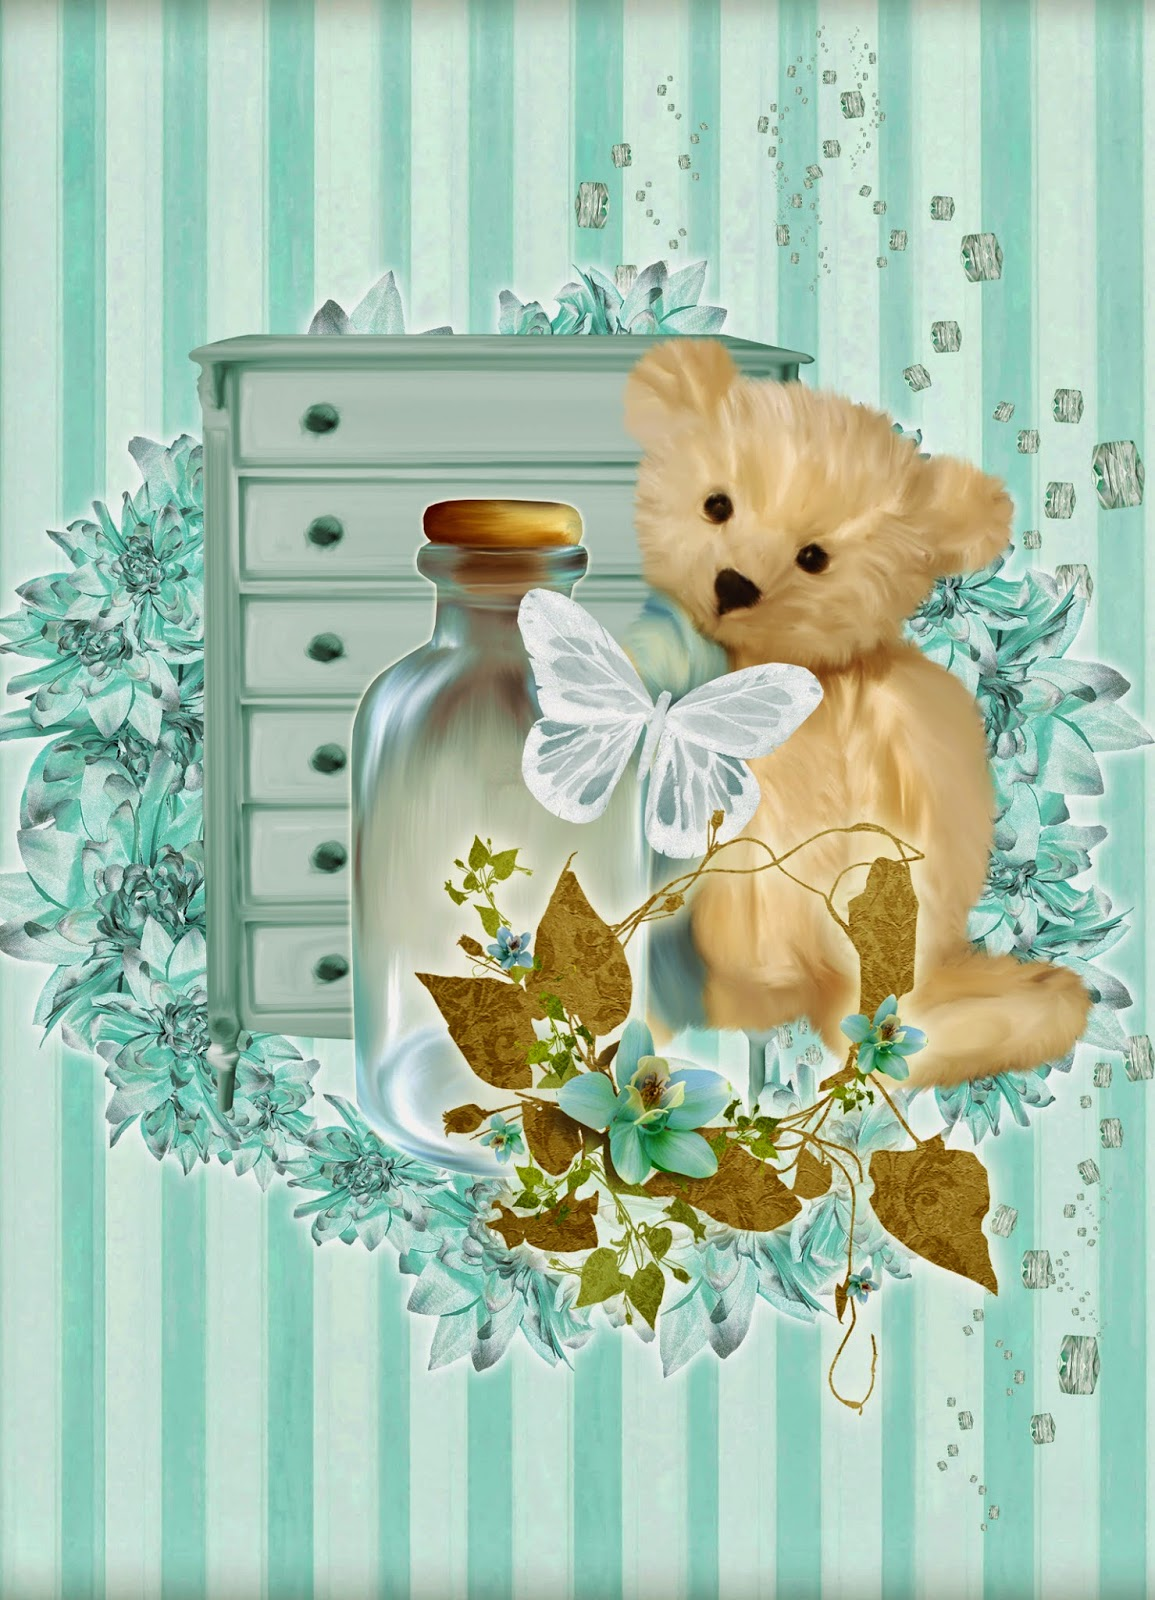 http://scrapclubekb.blogspot.ru/2015/04/blog-post_5.html